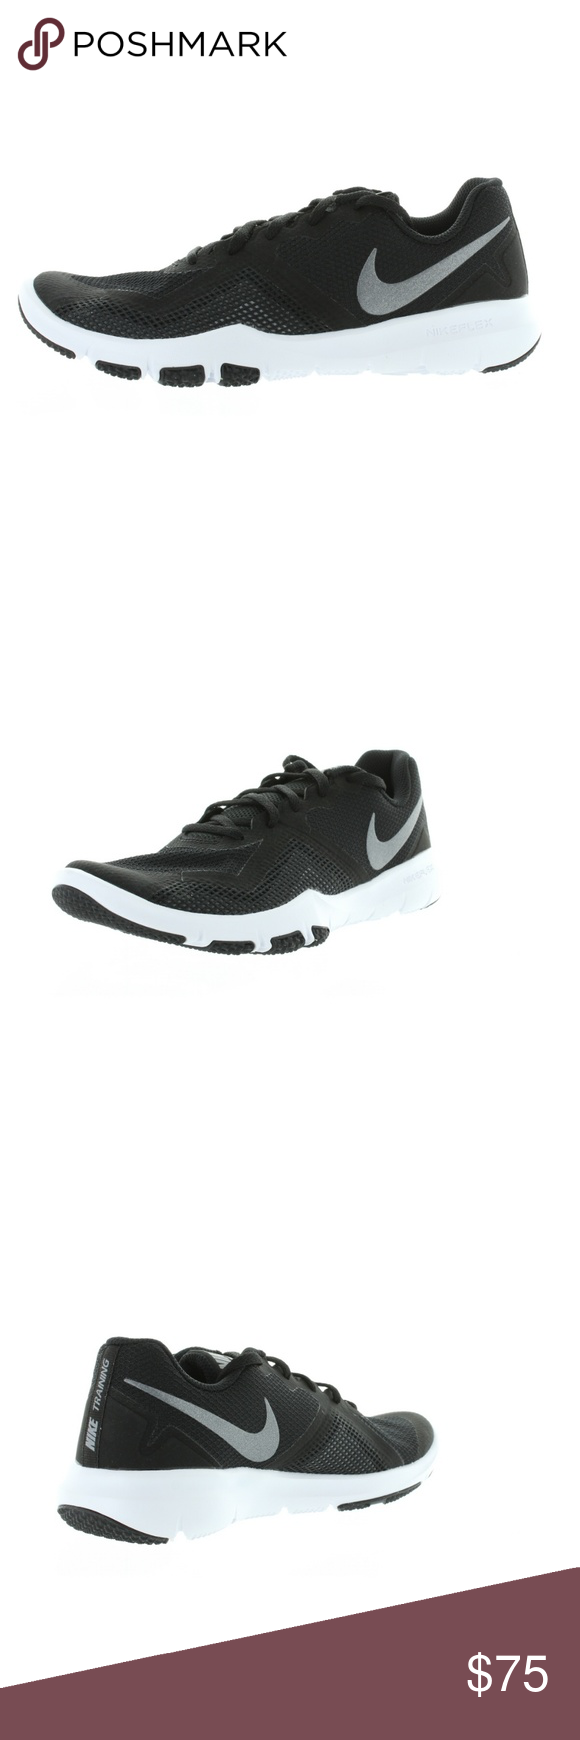 1586ca157fe73 Nike Mens Flex Control II Cross Trainers Shoes Product Name  Nike Men s  Flex Control II